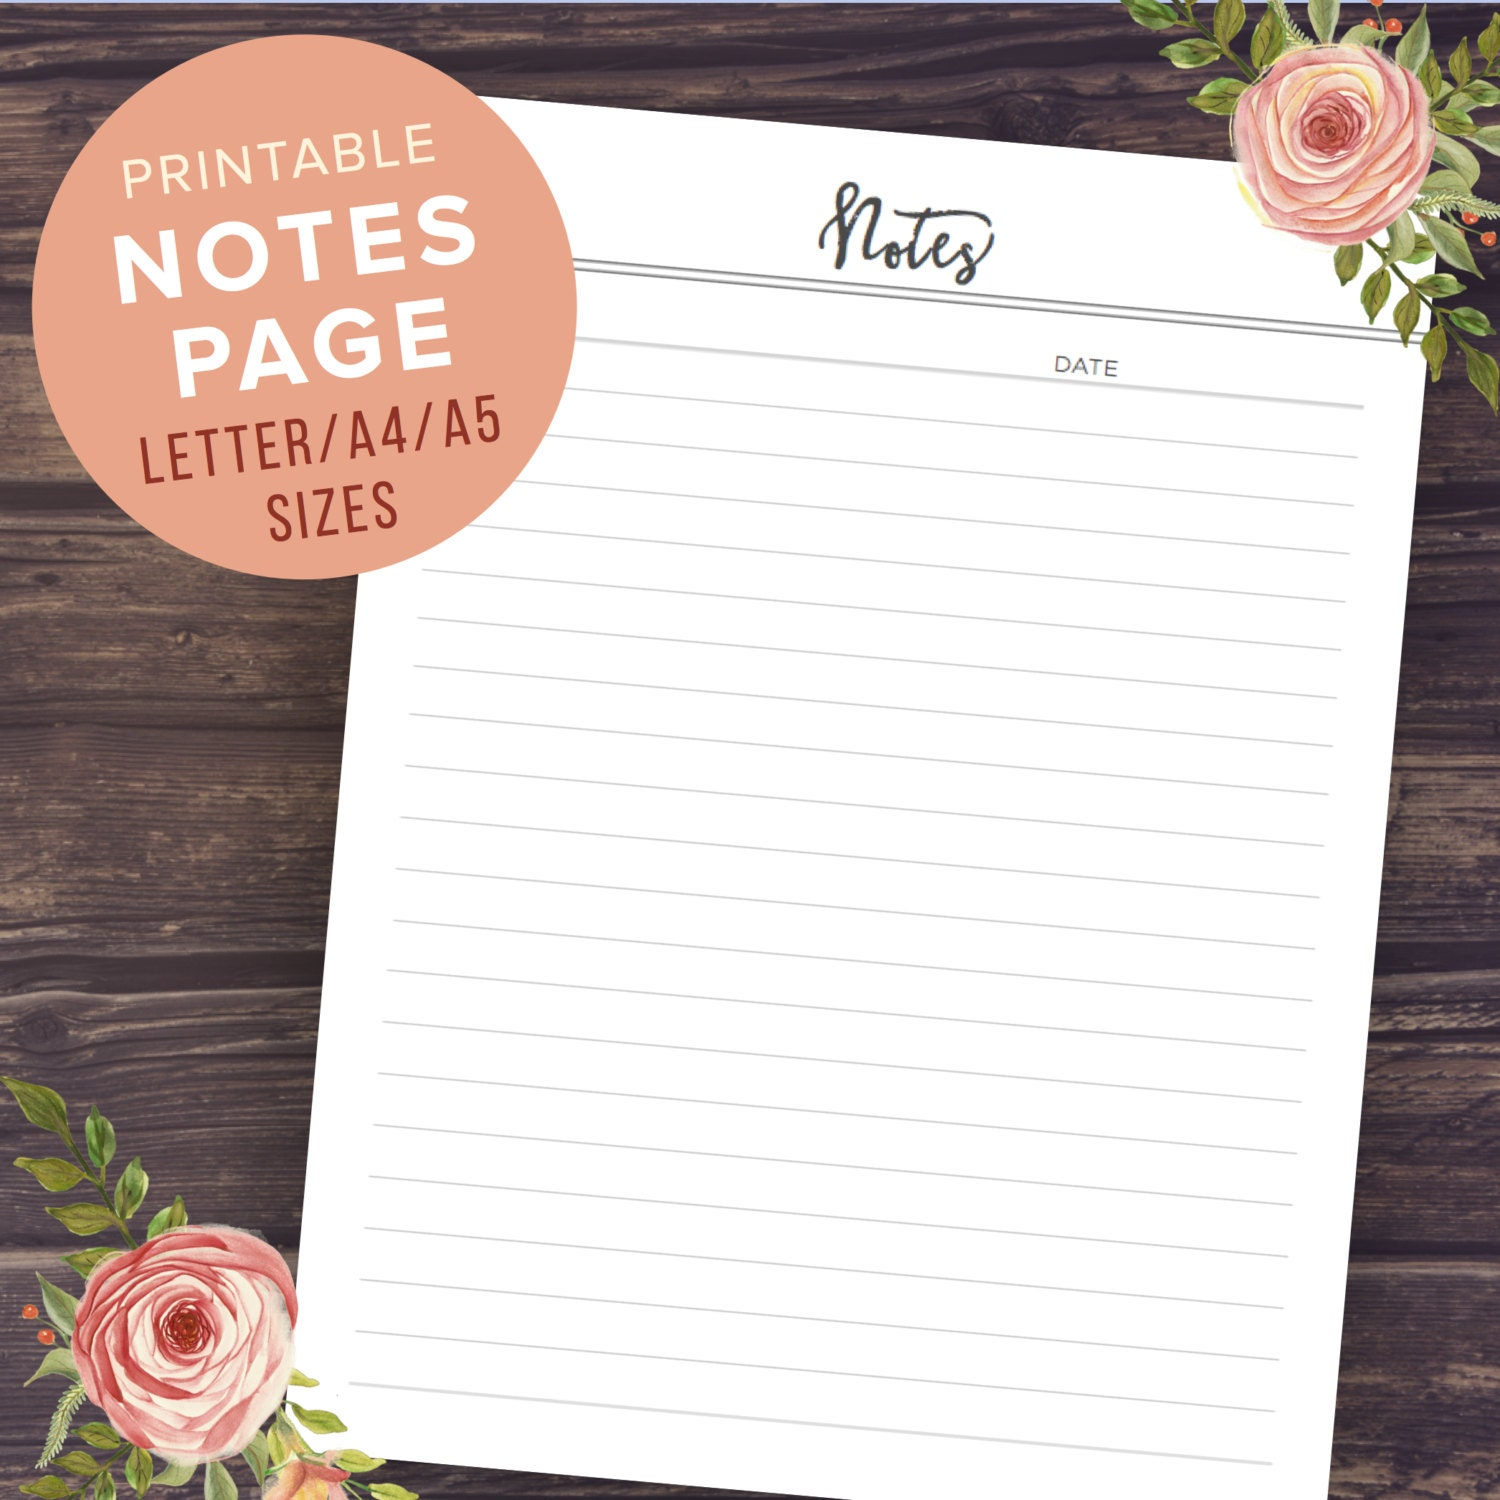 Printable Notepad Paper Notes Planner Pages Printable Notebook Pages Meeting Notes